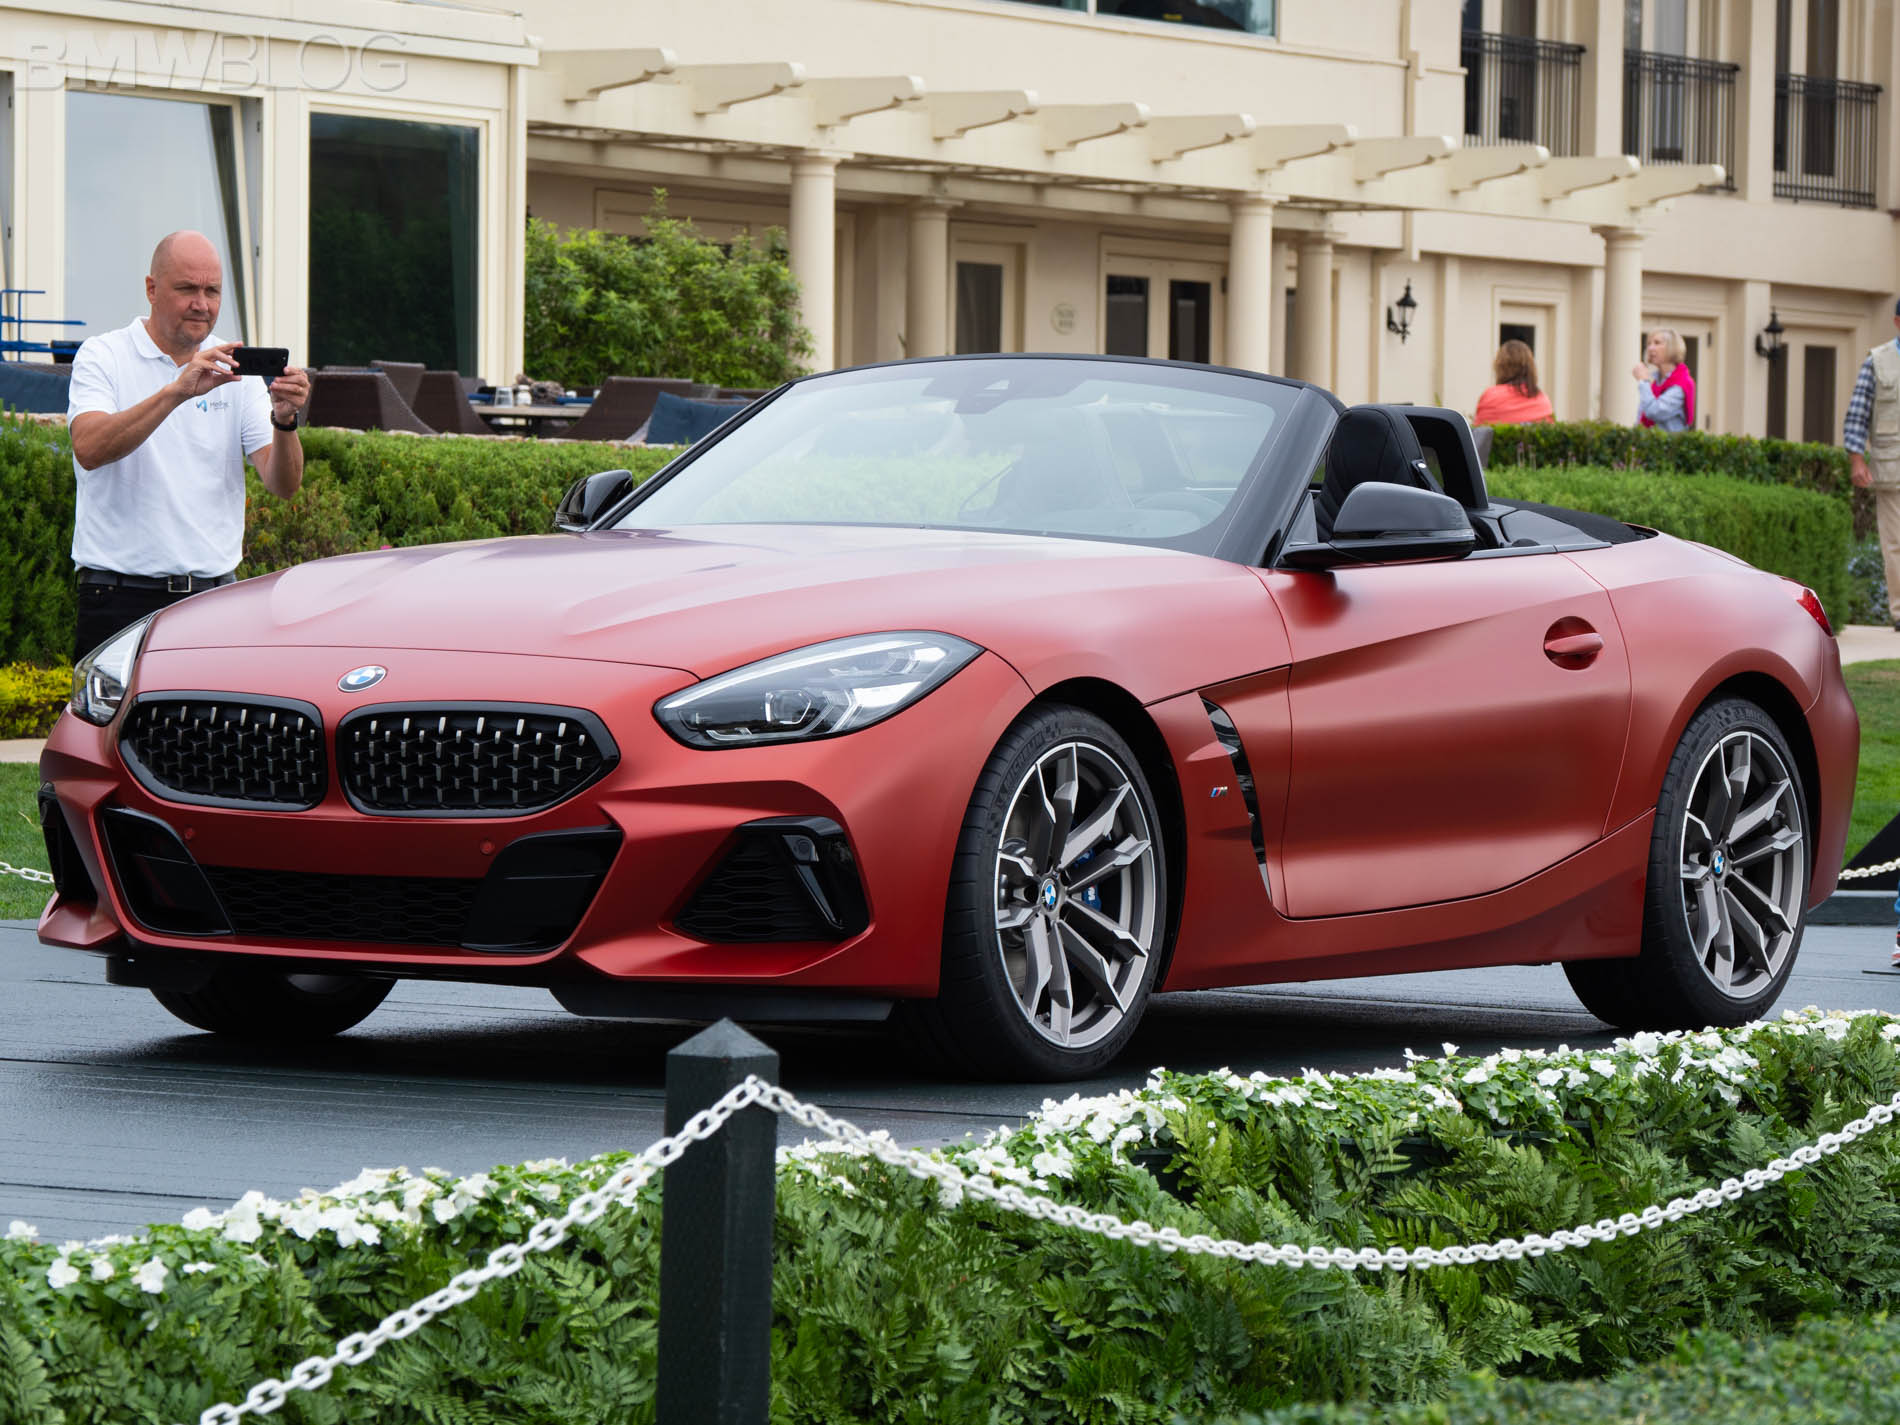 BMW Z4 Designer Explains: New Grille Design Reminiscent of 328 Mille Miglia